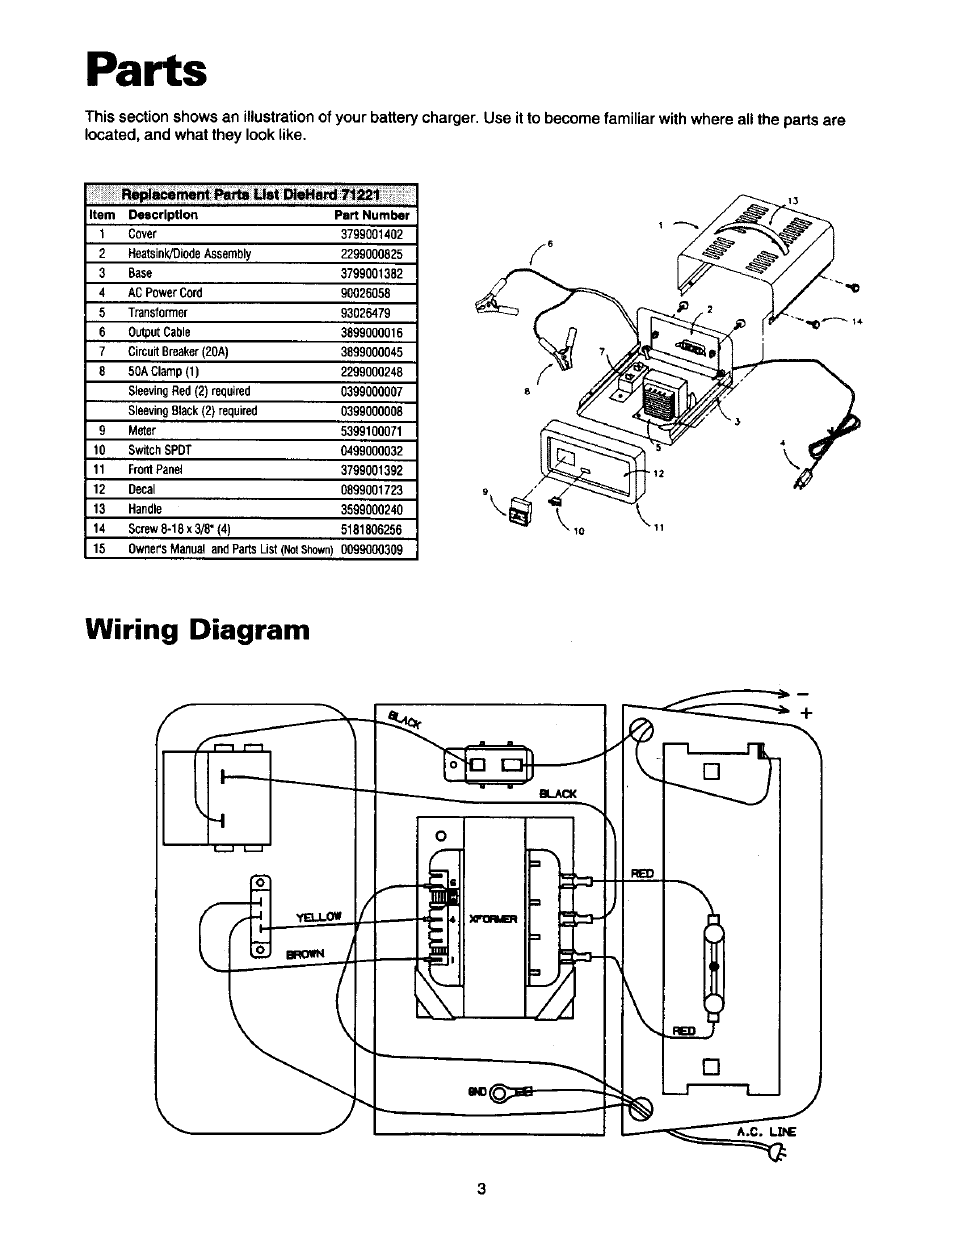 11 Wiring Schematic Part 12 Wiring Diagram Parts